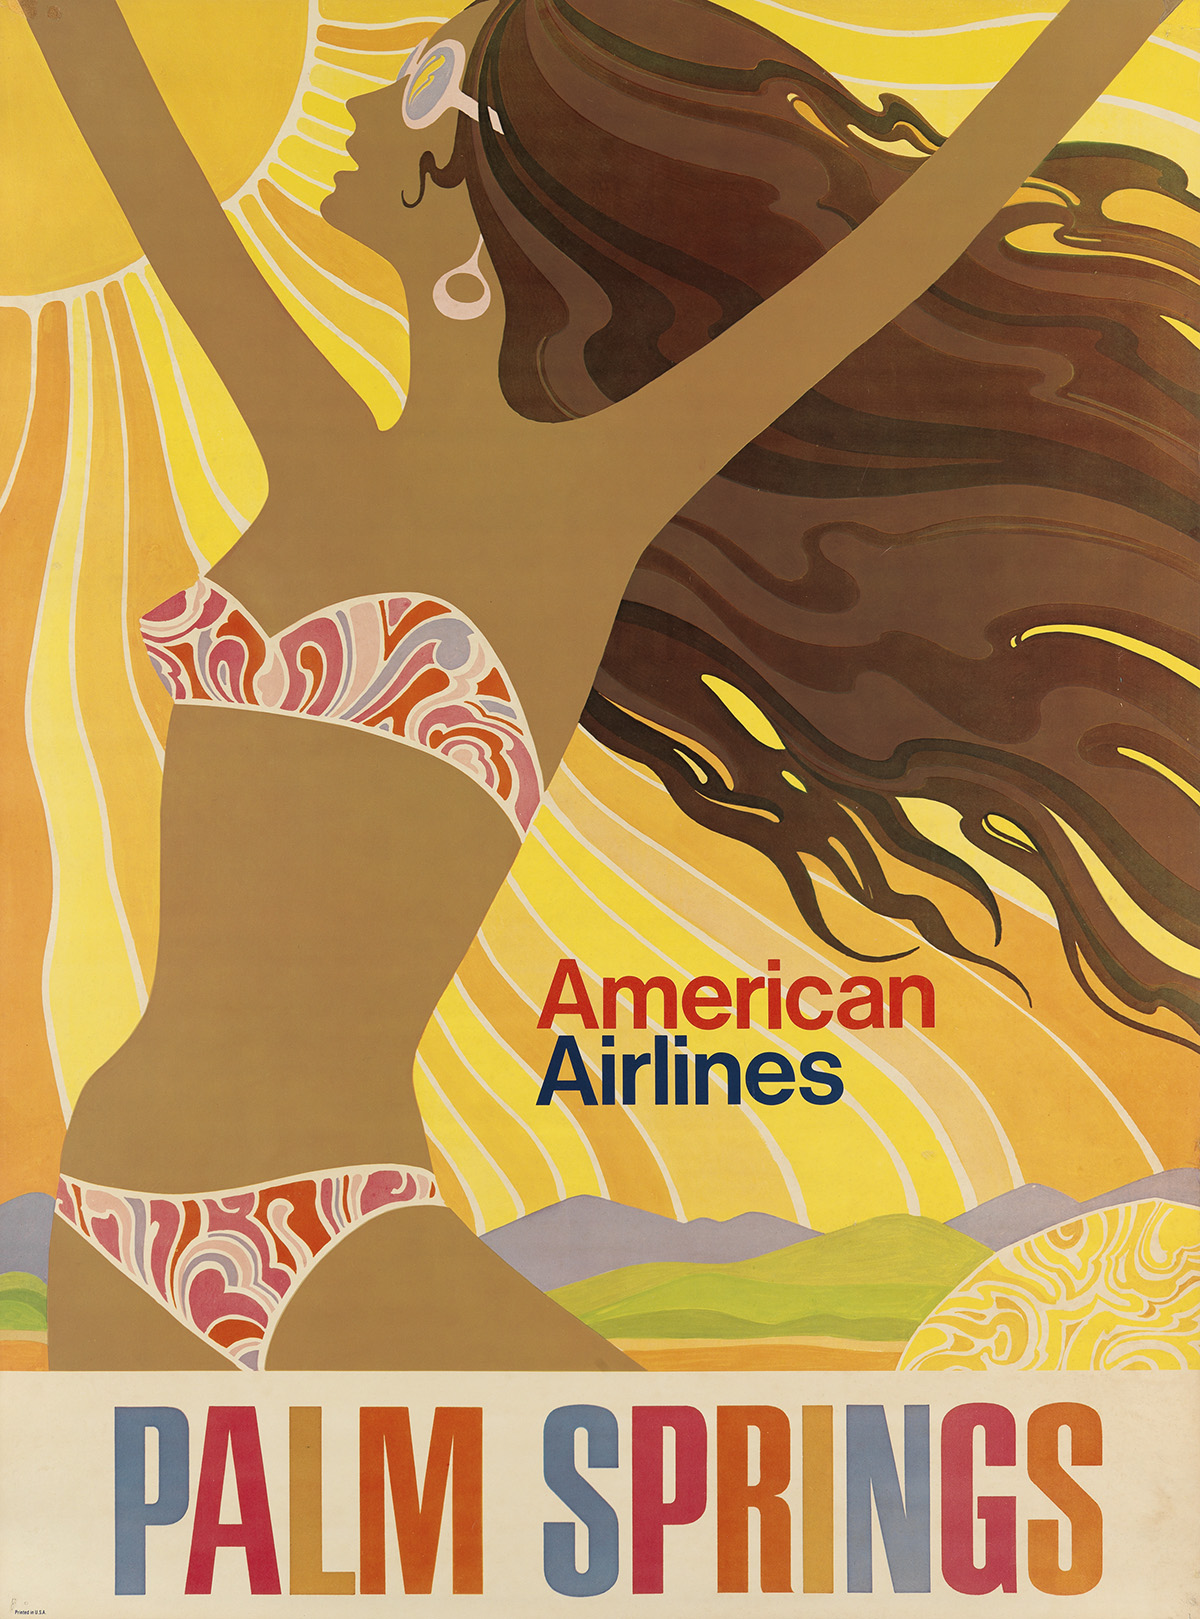 DESIGNER-UNKNOWN-PALM-SPRINGS--AMERICAN-AIRLINES-Circa-1960s